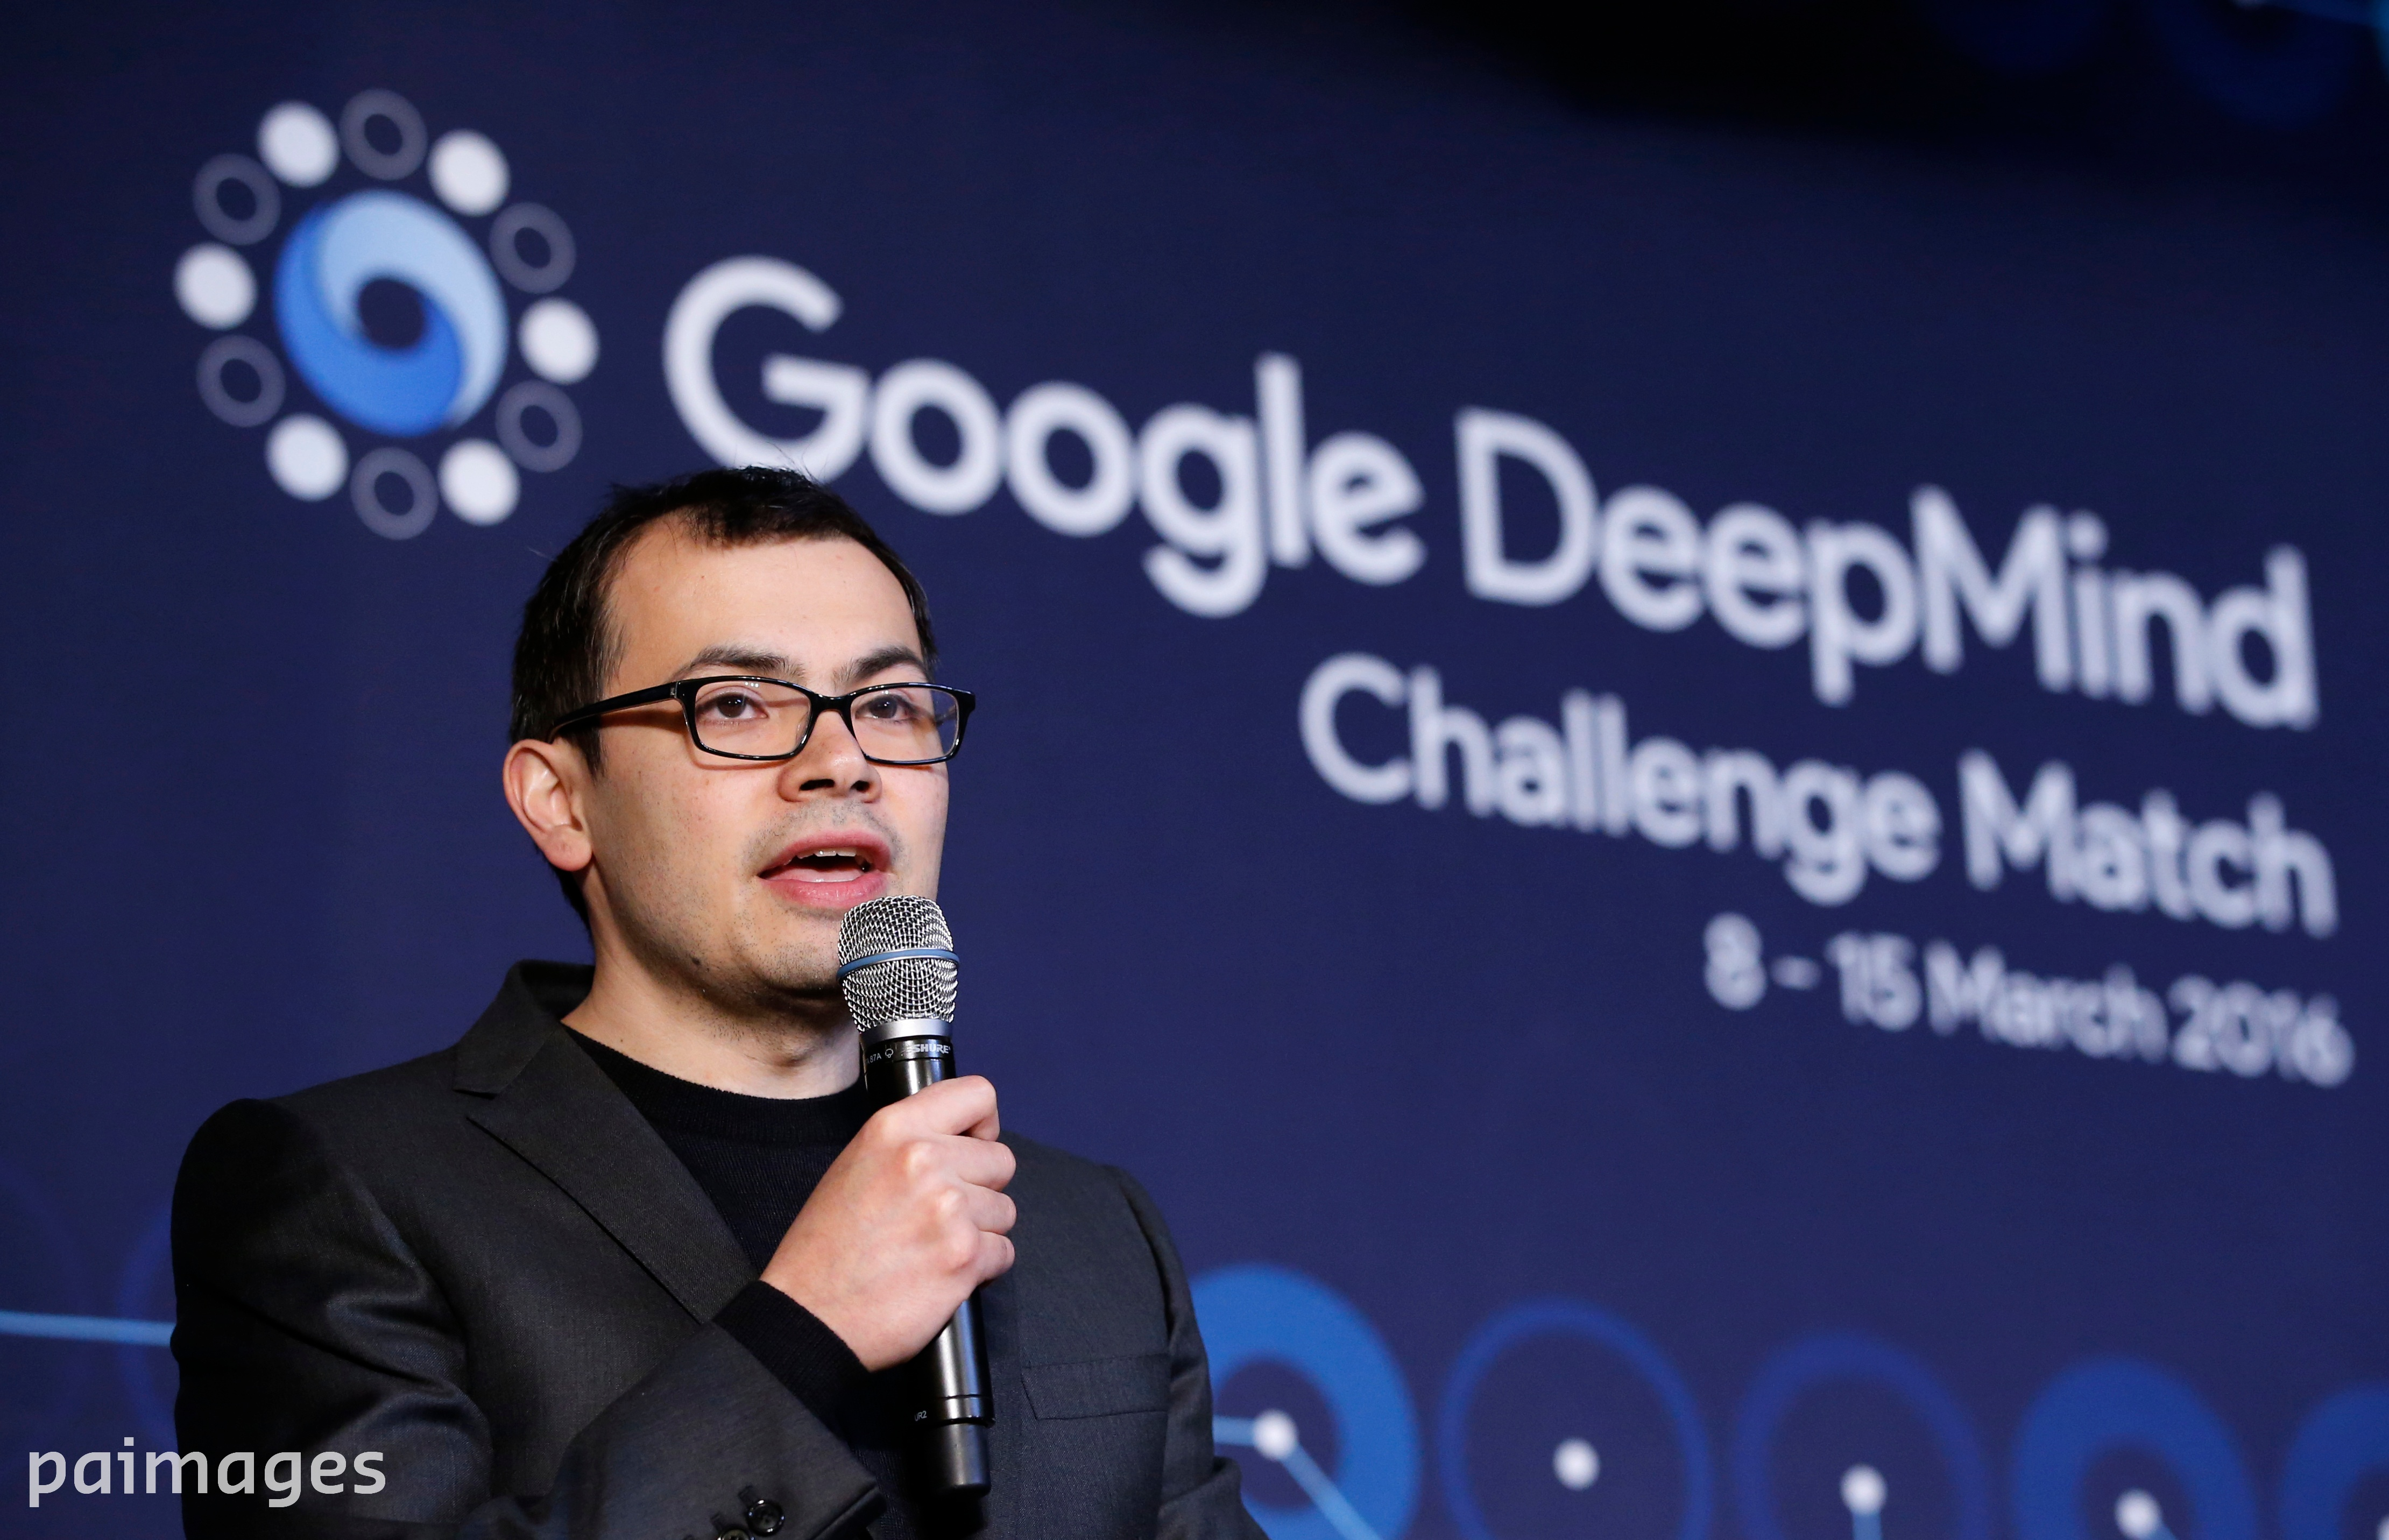 Why DeepMind's Victory is Good News for Housing